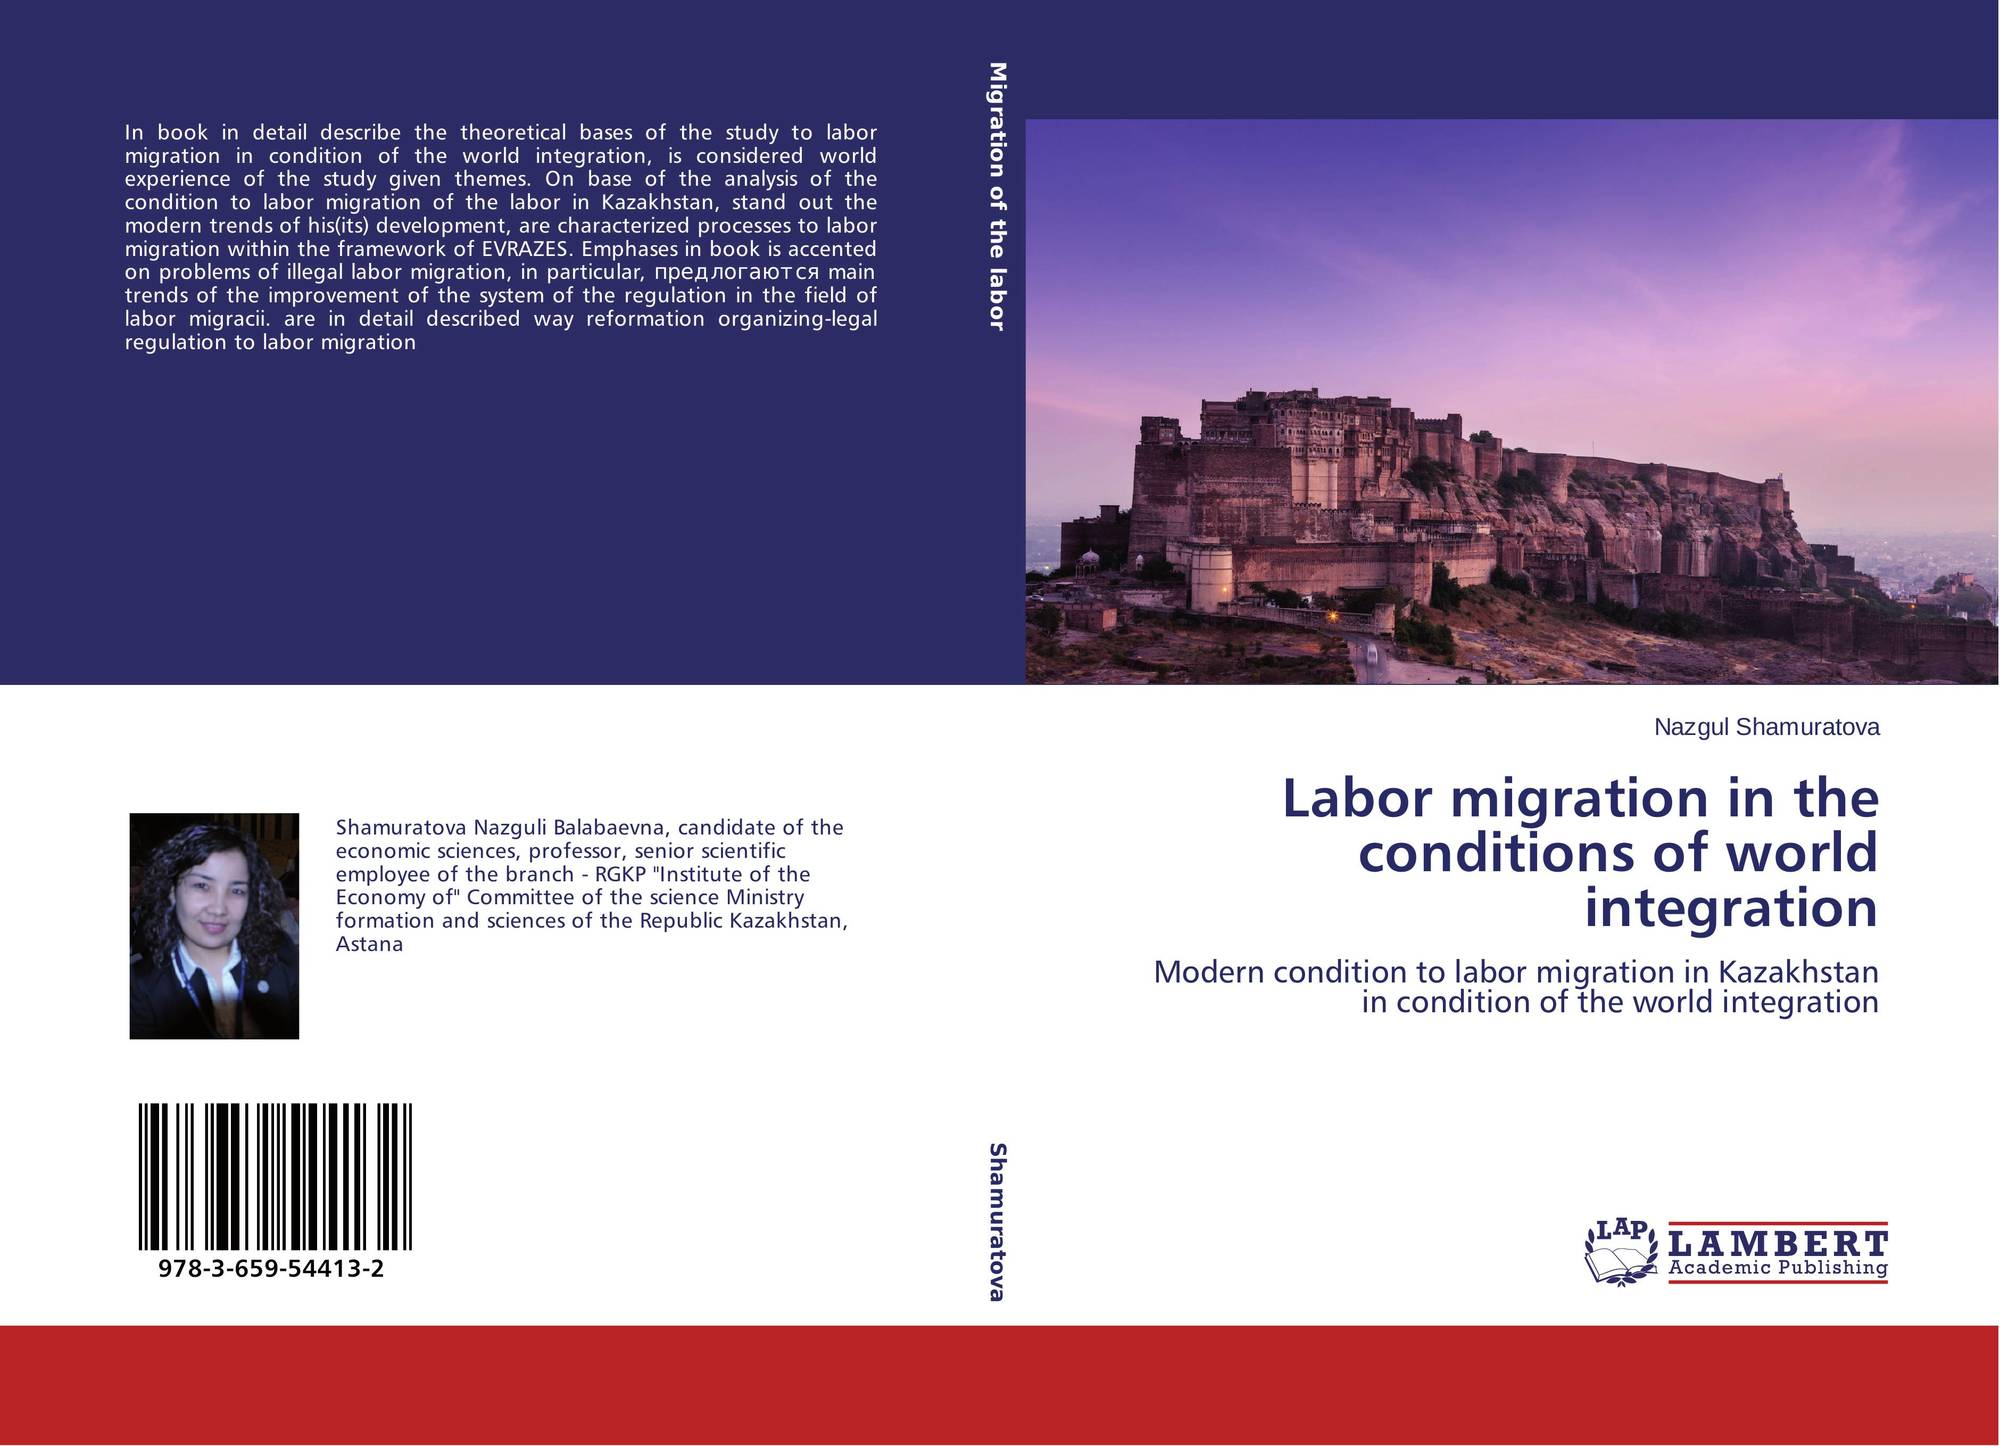 a study of the labor migration Back to main menu theoretical framework: gendered migration, division of labor, and transnationalism  in the conceptual framework, you were introduced to the rationalist, structuralist, relational, and transnational theories on migration, where the examinations of gender differences in migration are considered relational.